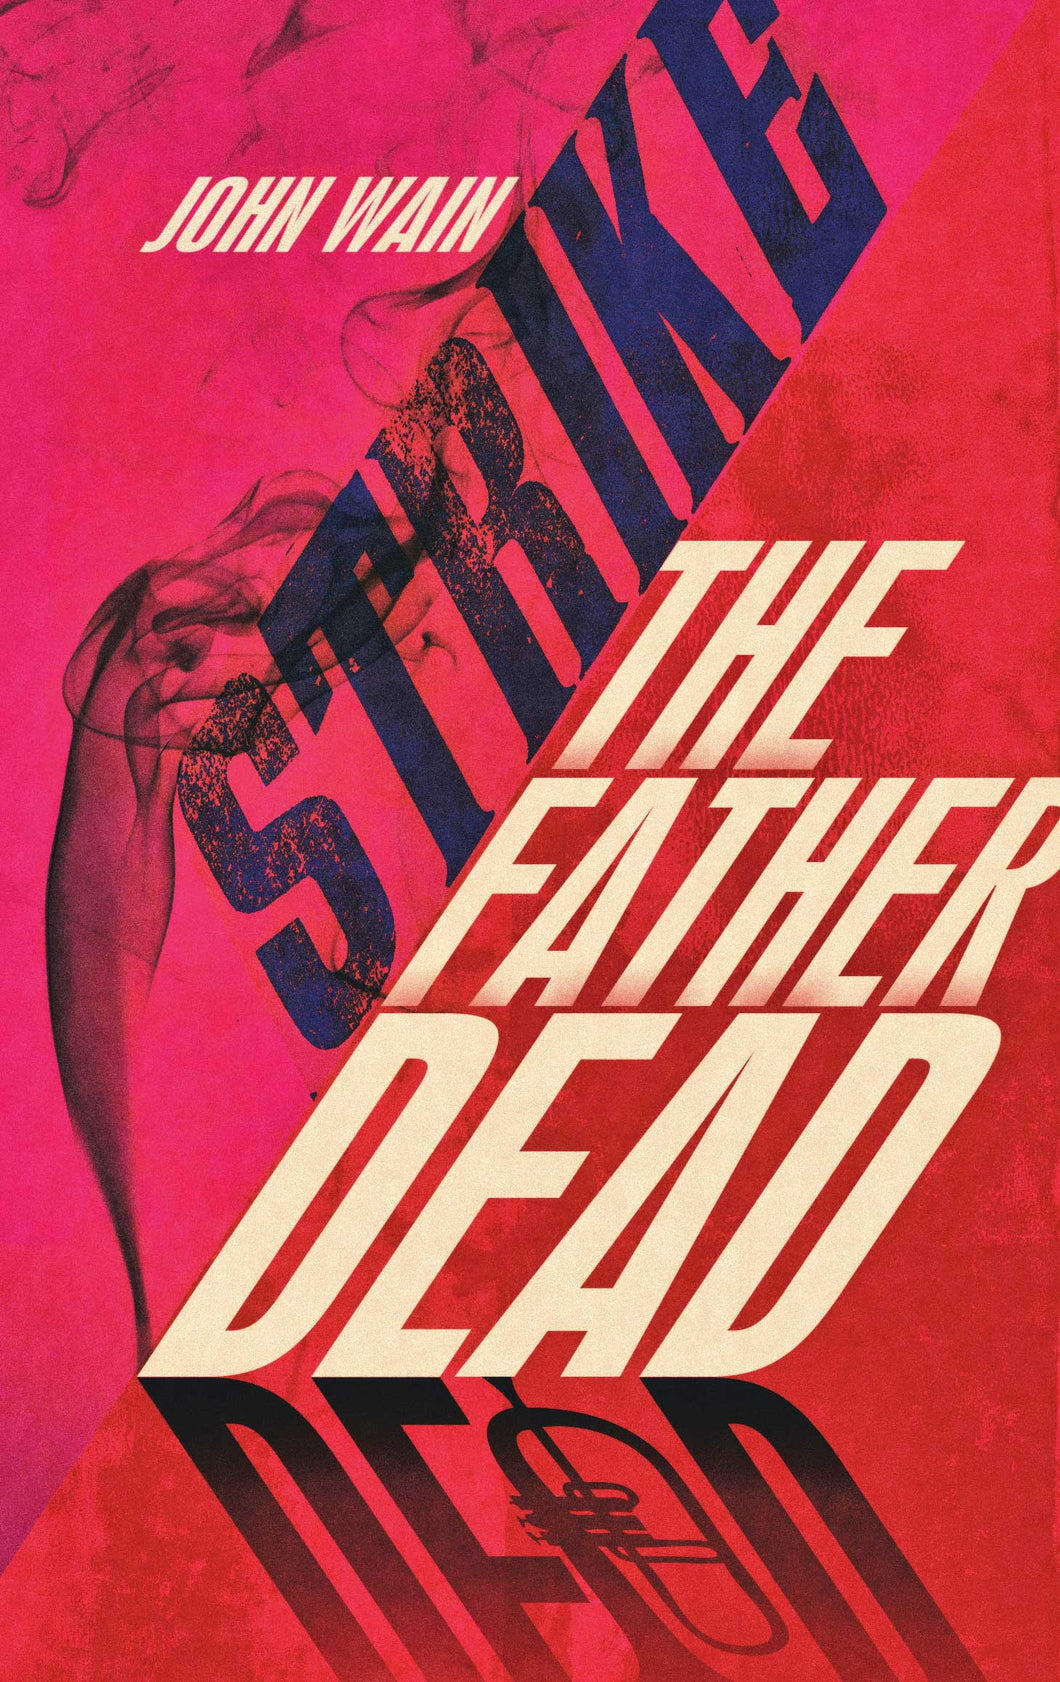 Strike the Father Dead by John Wain, Foruli Fiction, ISBN 9781905792573, front cover